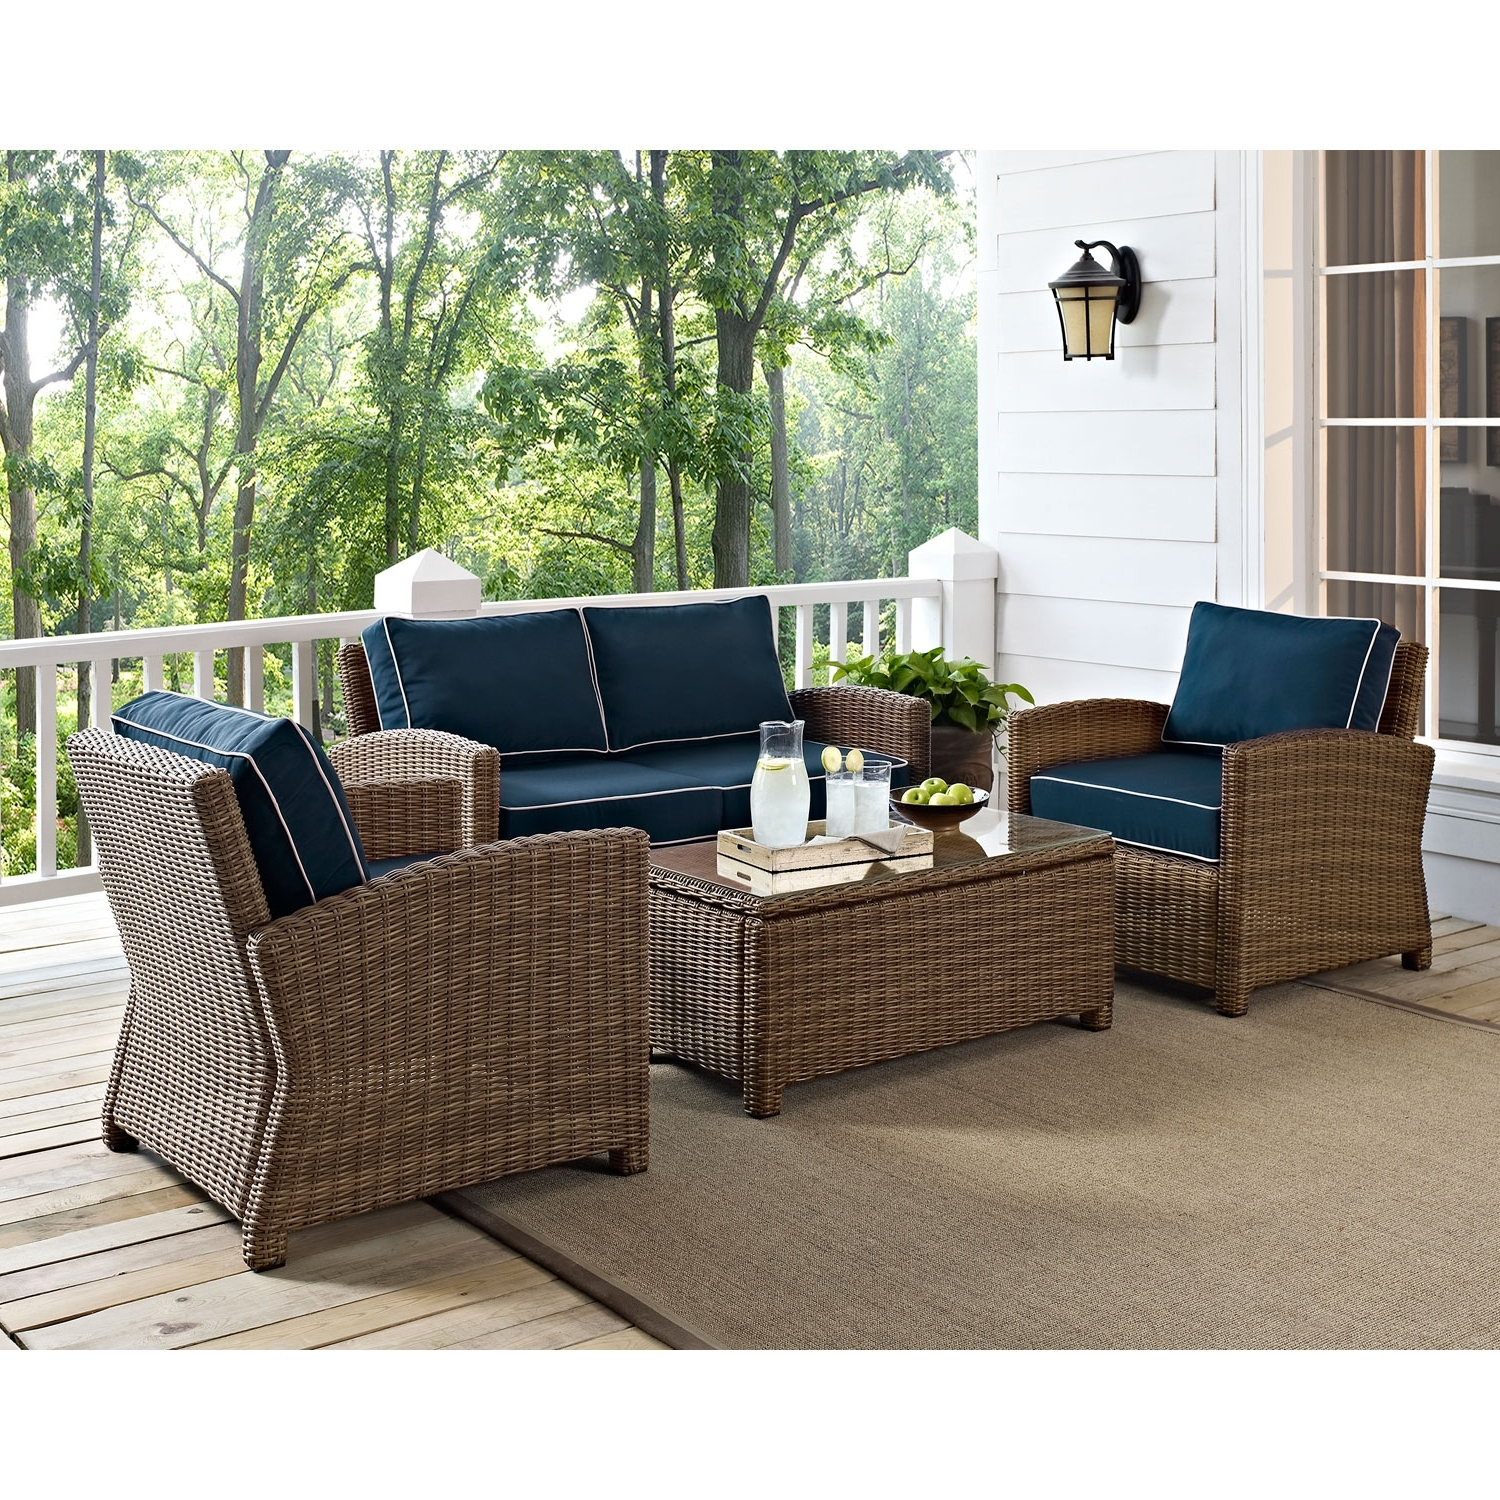 Patio Conversation Sets With Cushions In Most Recently Released Crosley Furniture Bradenton 4 Piece Outdoor Wicker Seating Set With Navy Cushions (View 7 of 20)